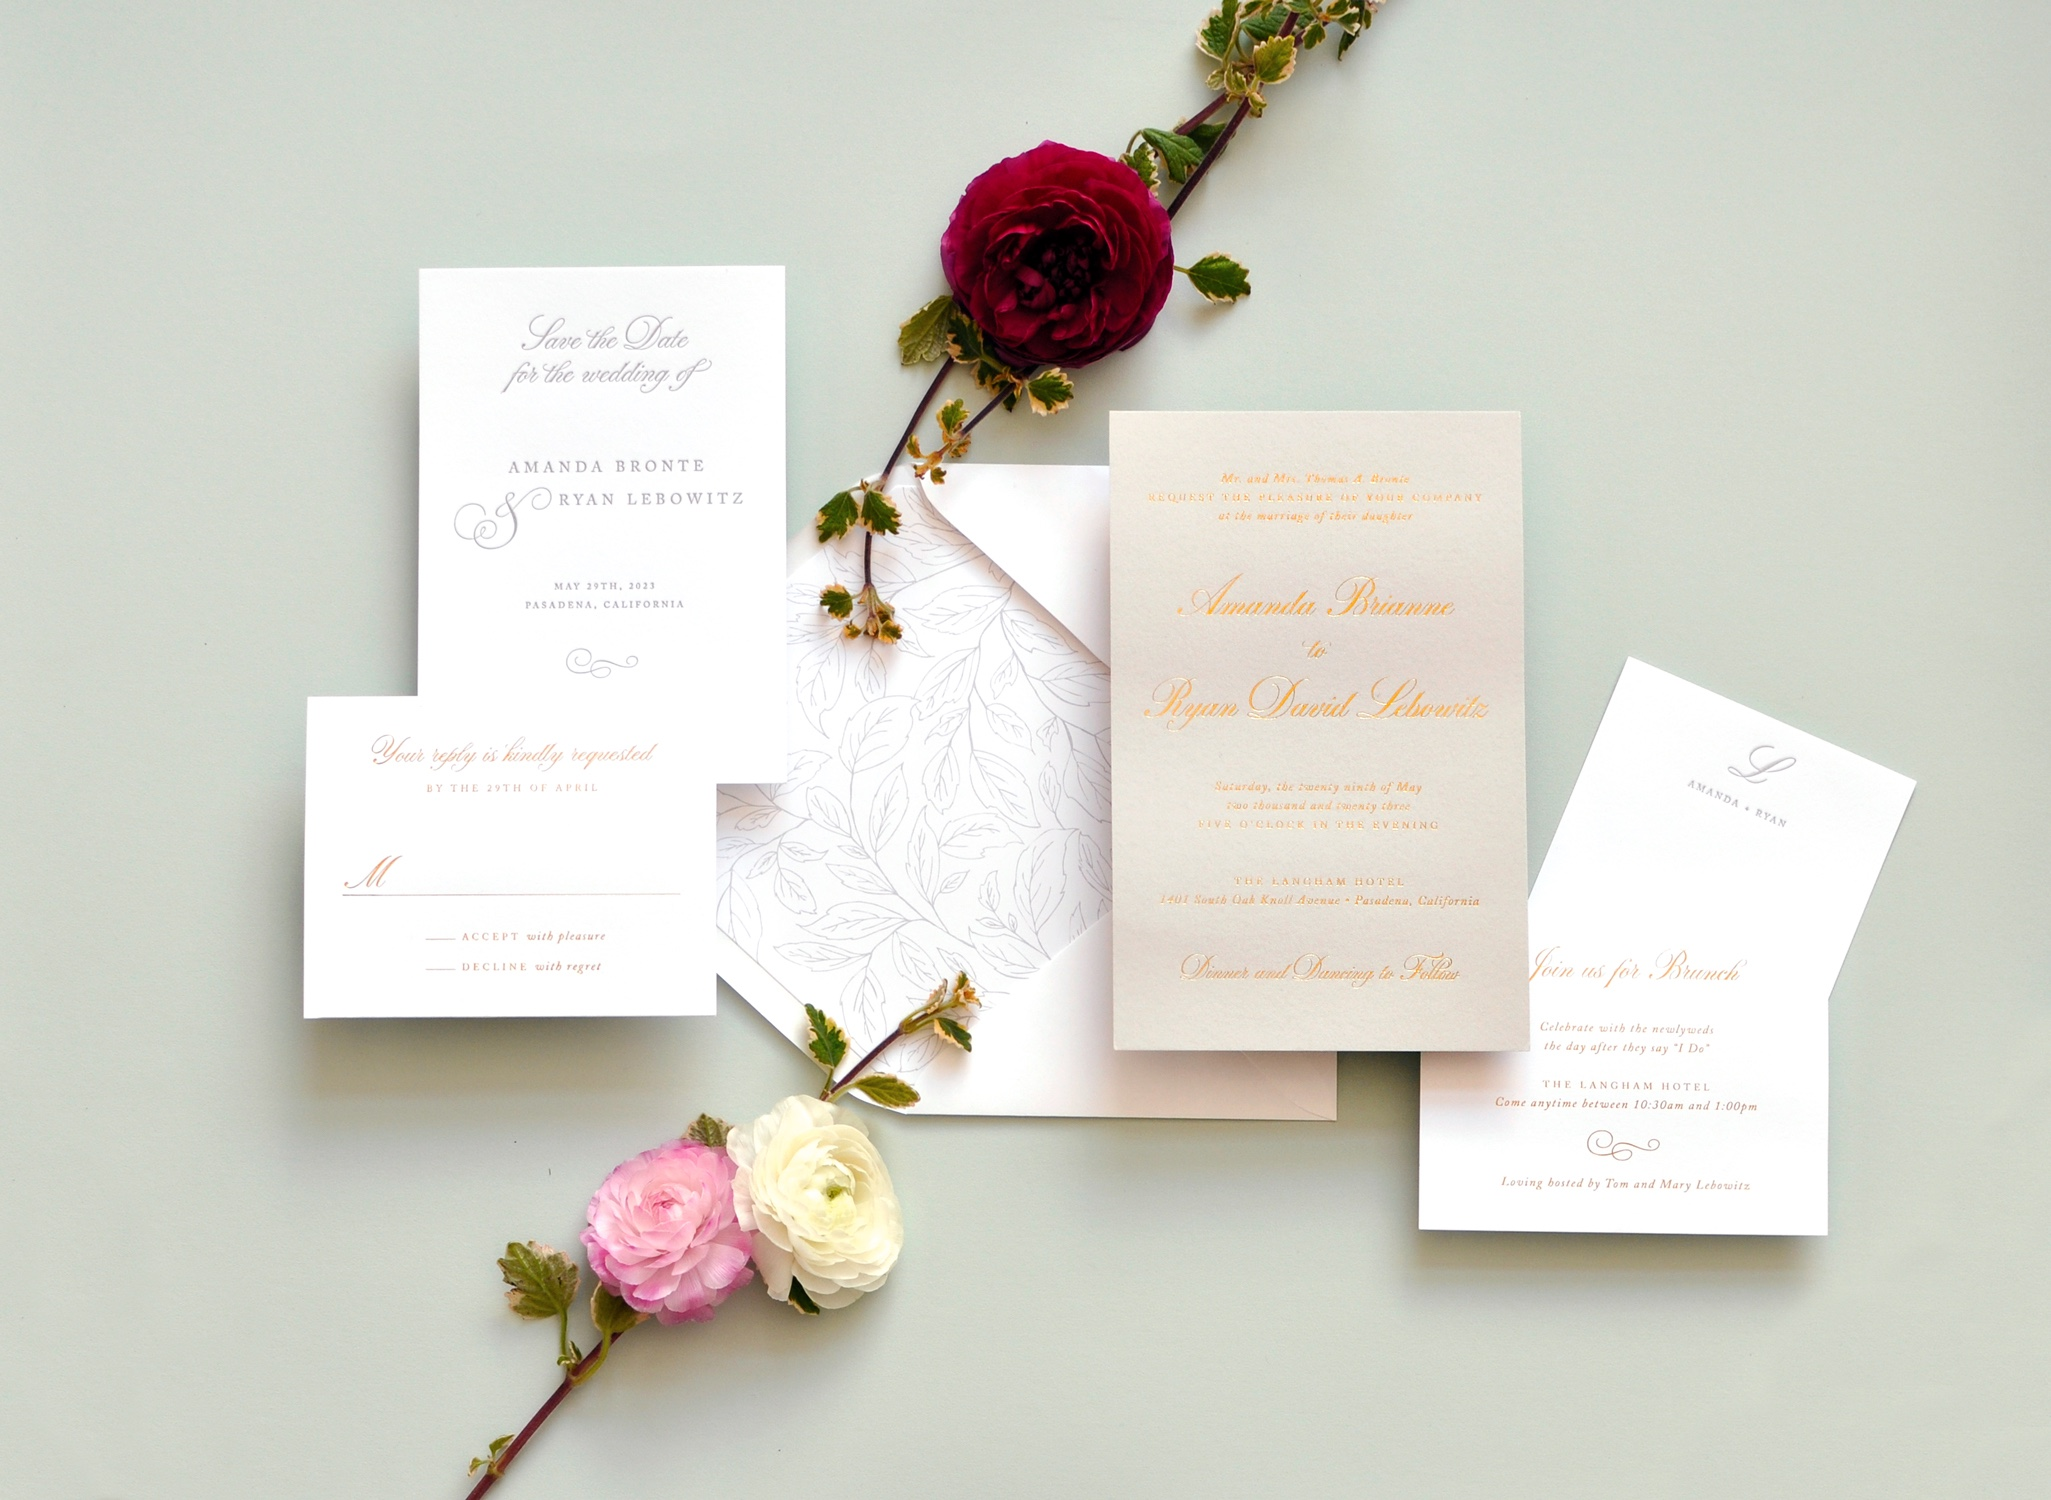 Rose gold foil invitations, vintage floral envelope liner, luxury wedding invitations Fairfax, VA.